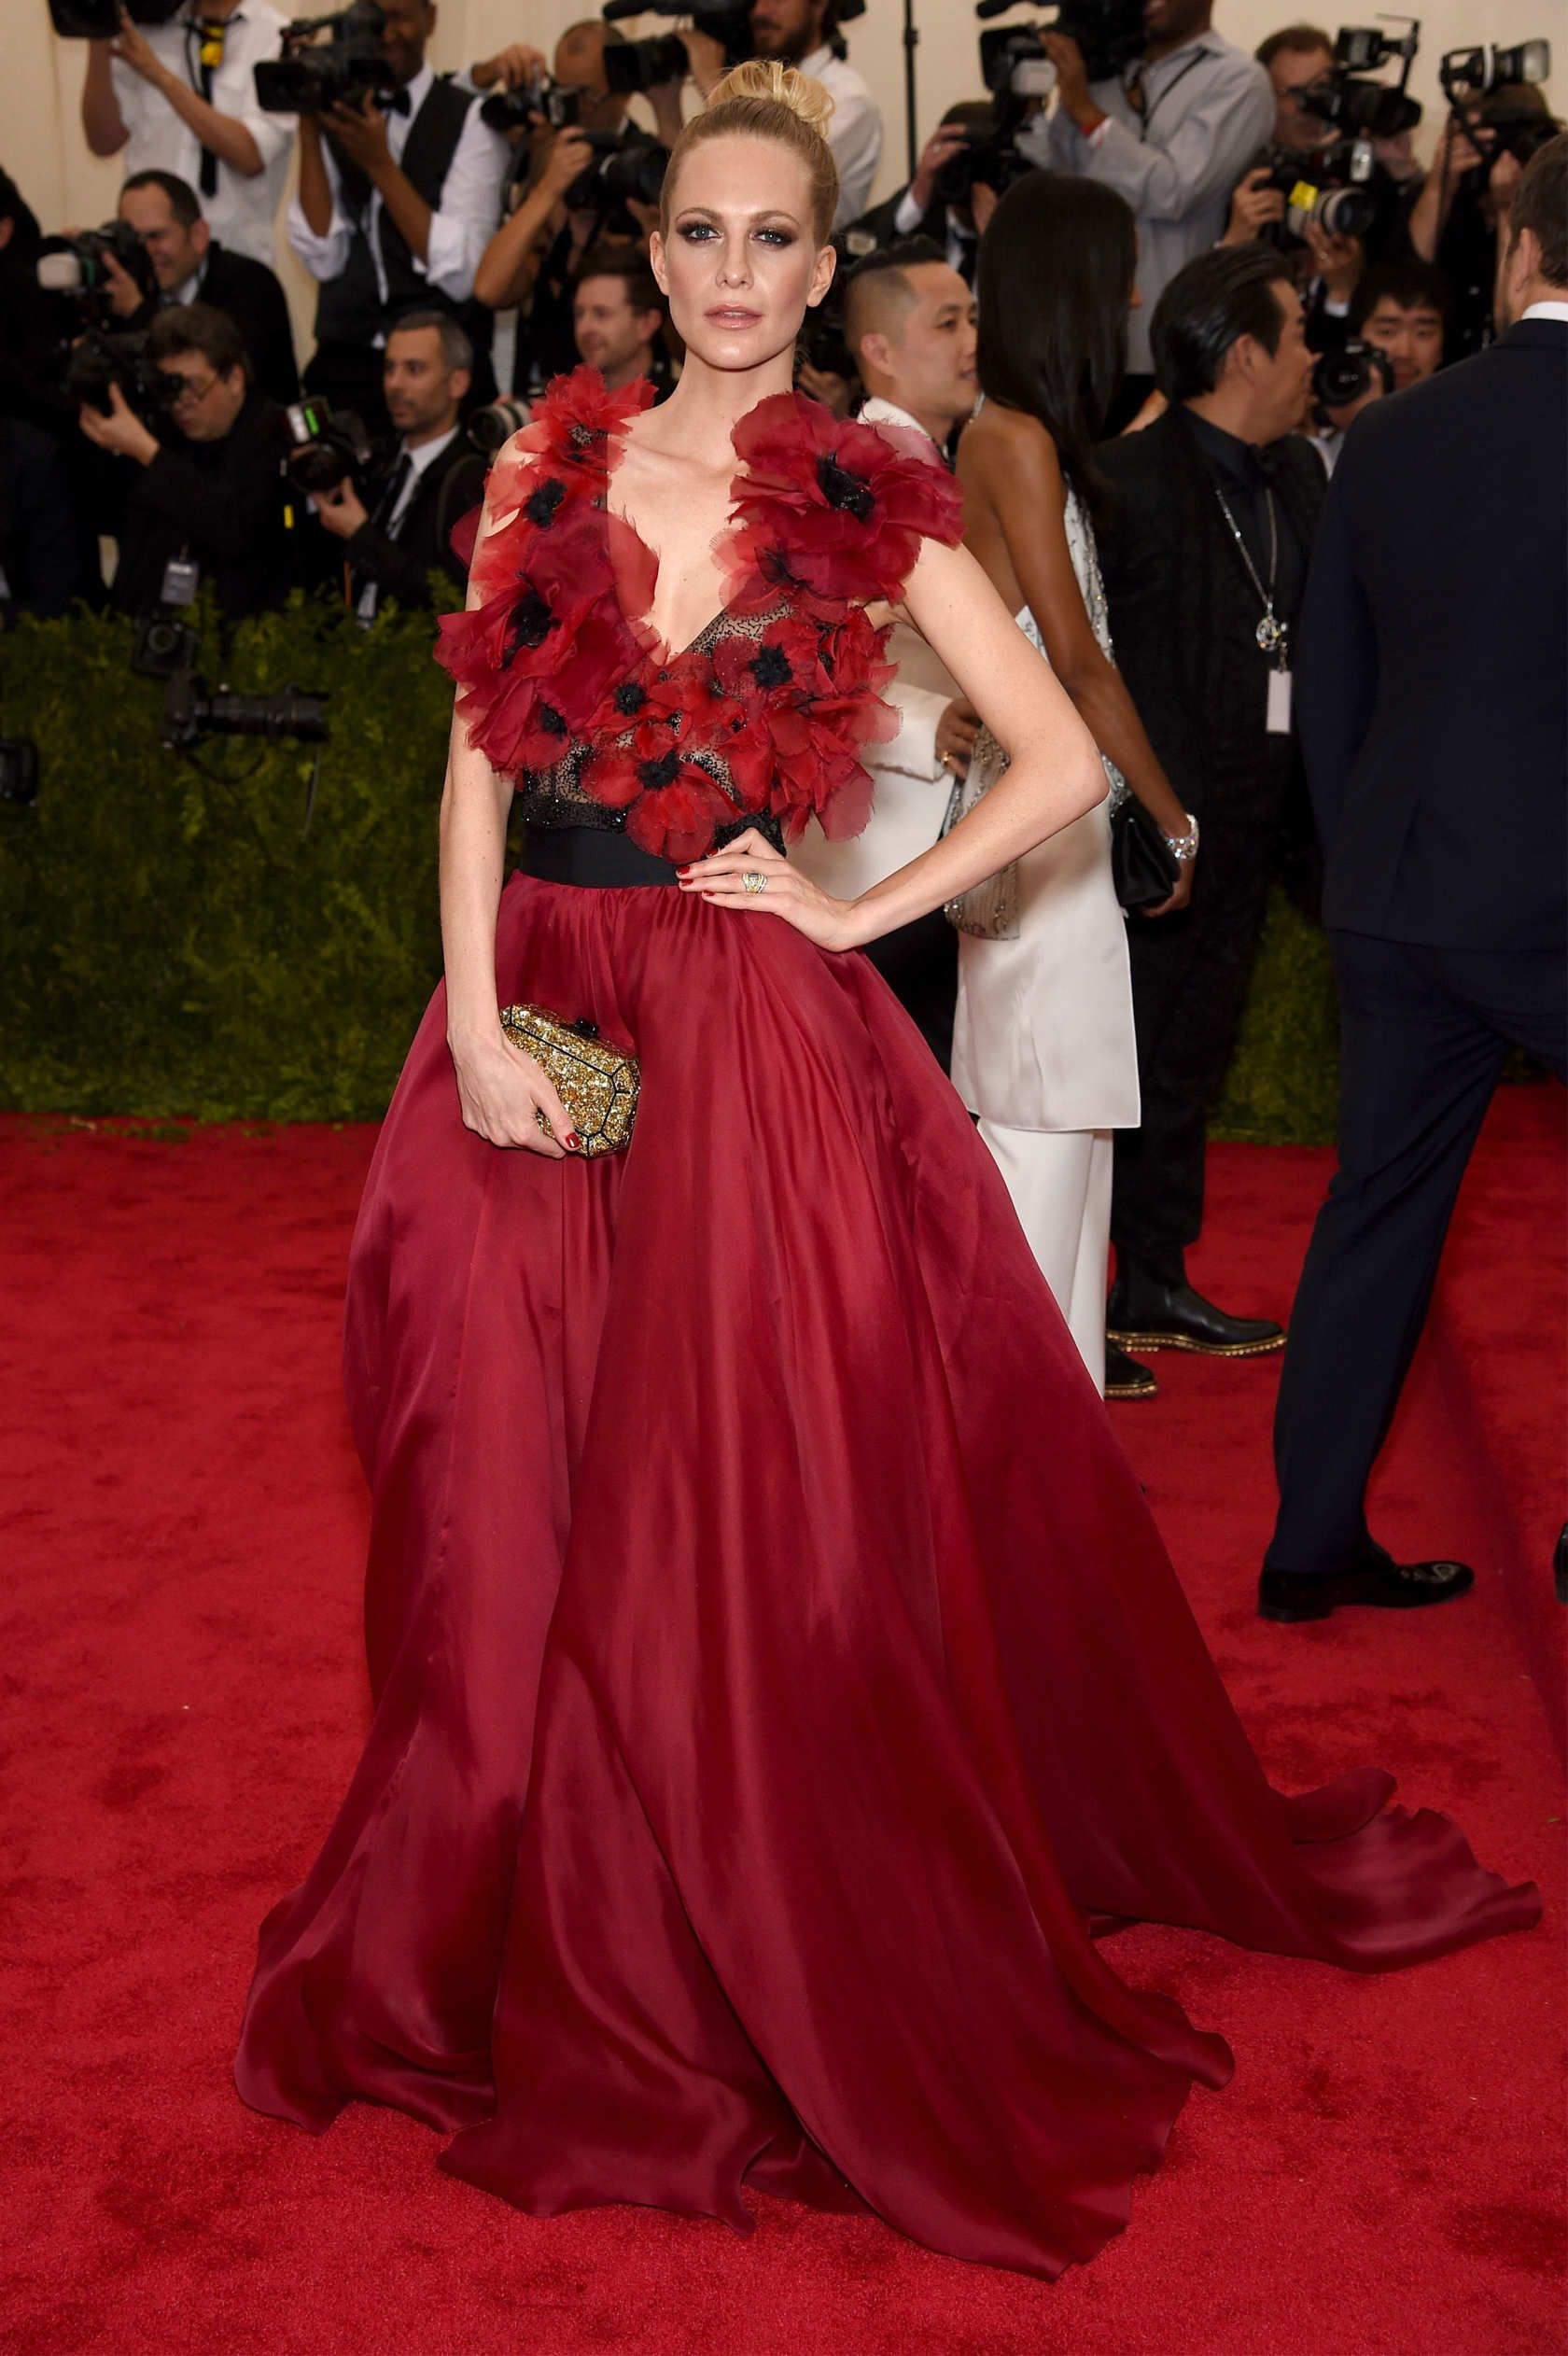 Poppy Delevingne bringing all the red feels at the 2015 Met Gala via The Cut